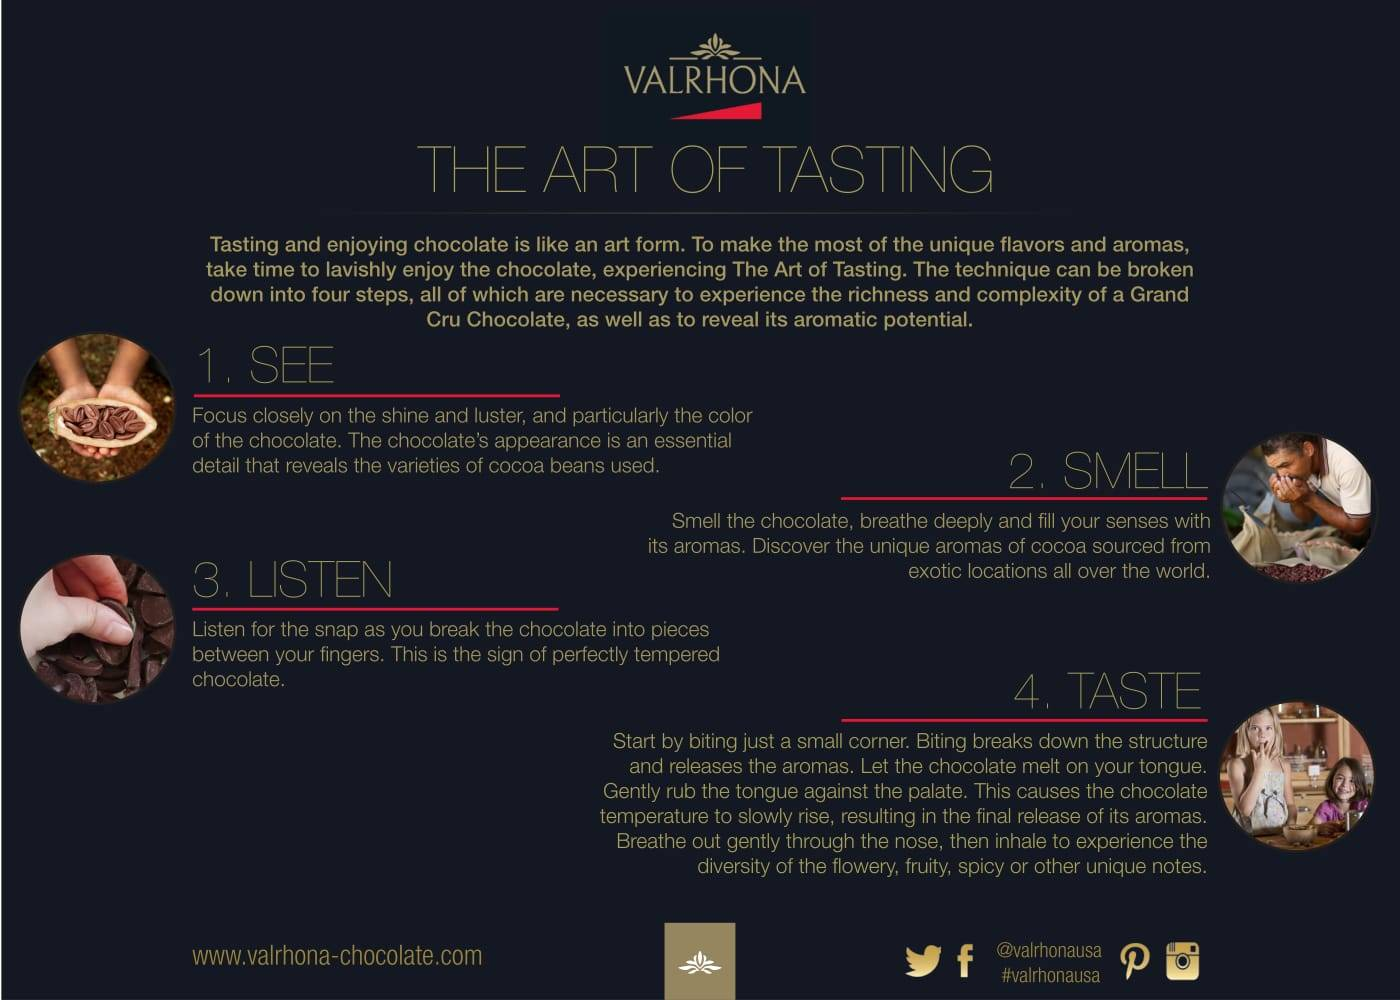 The Art of Tasting